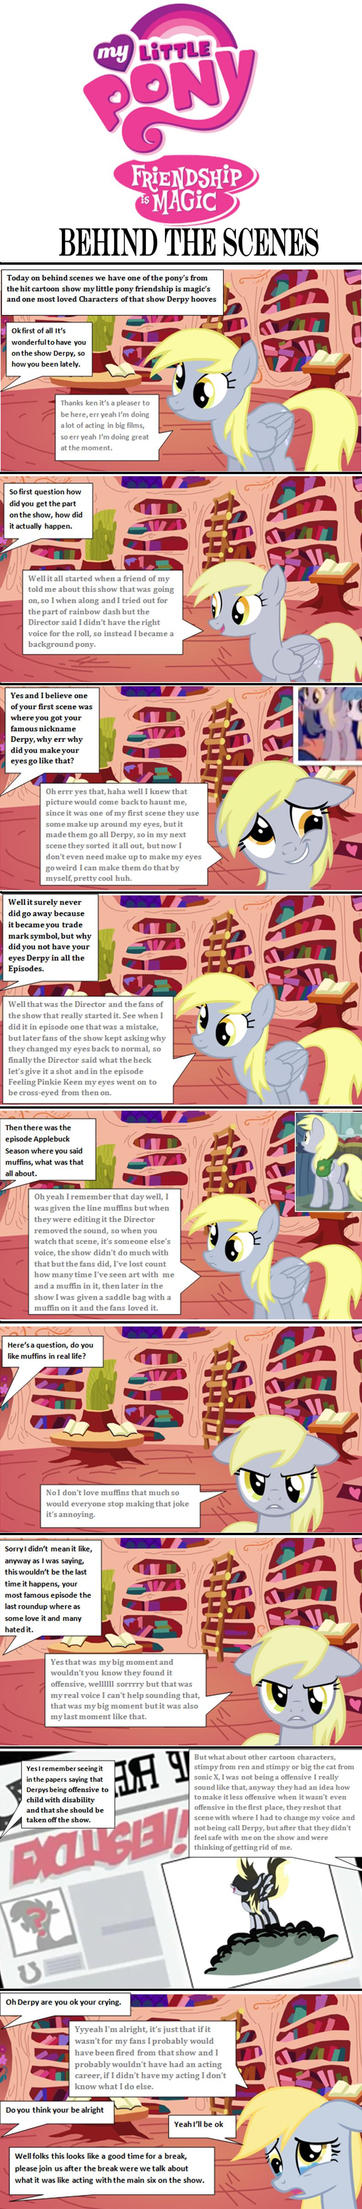 my little pony behind the scenes with derpy part 1 by batman0889